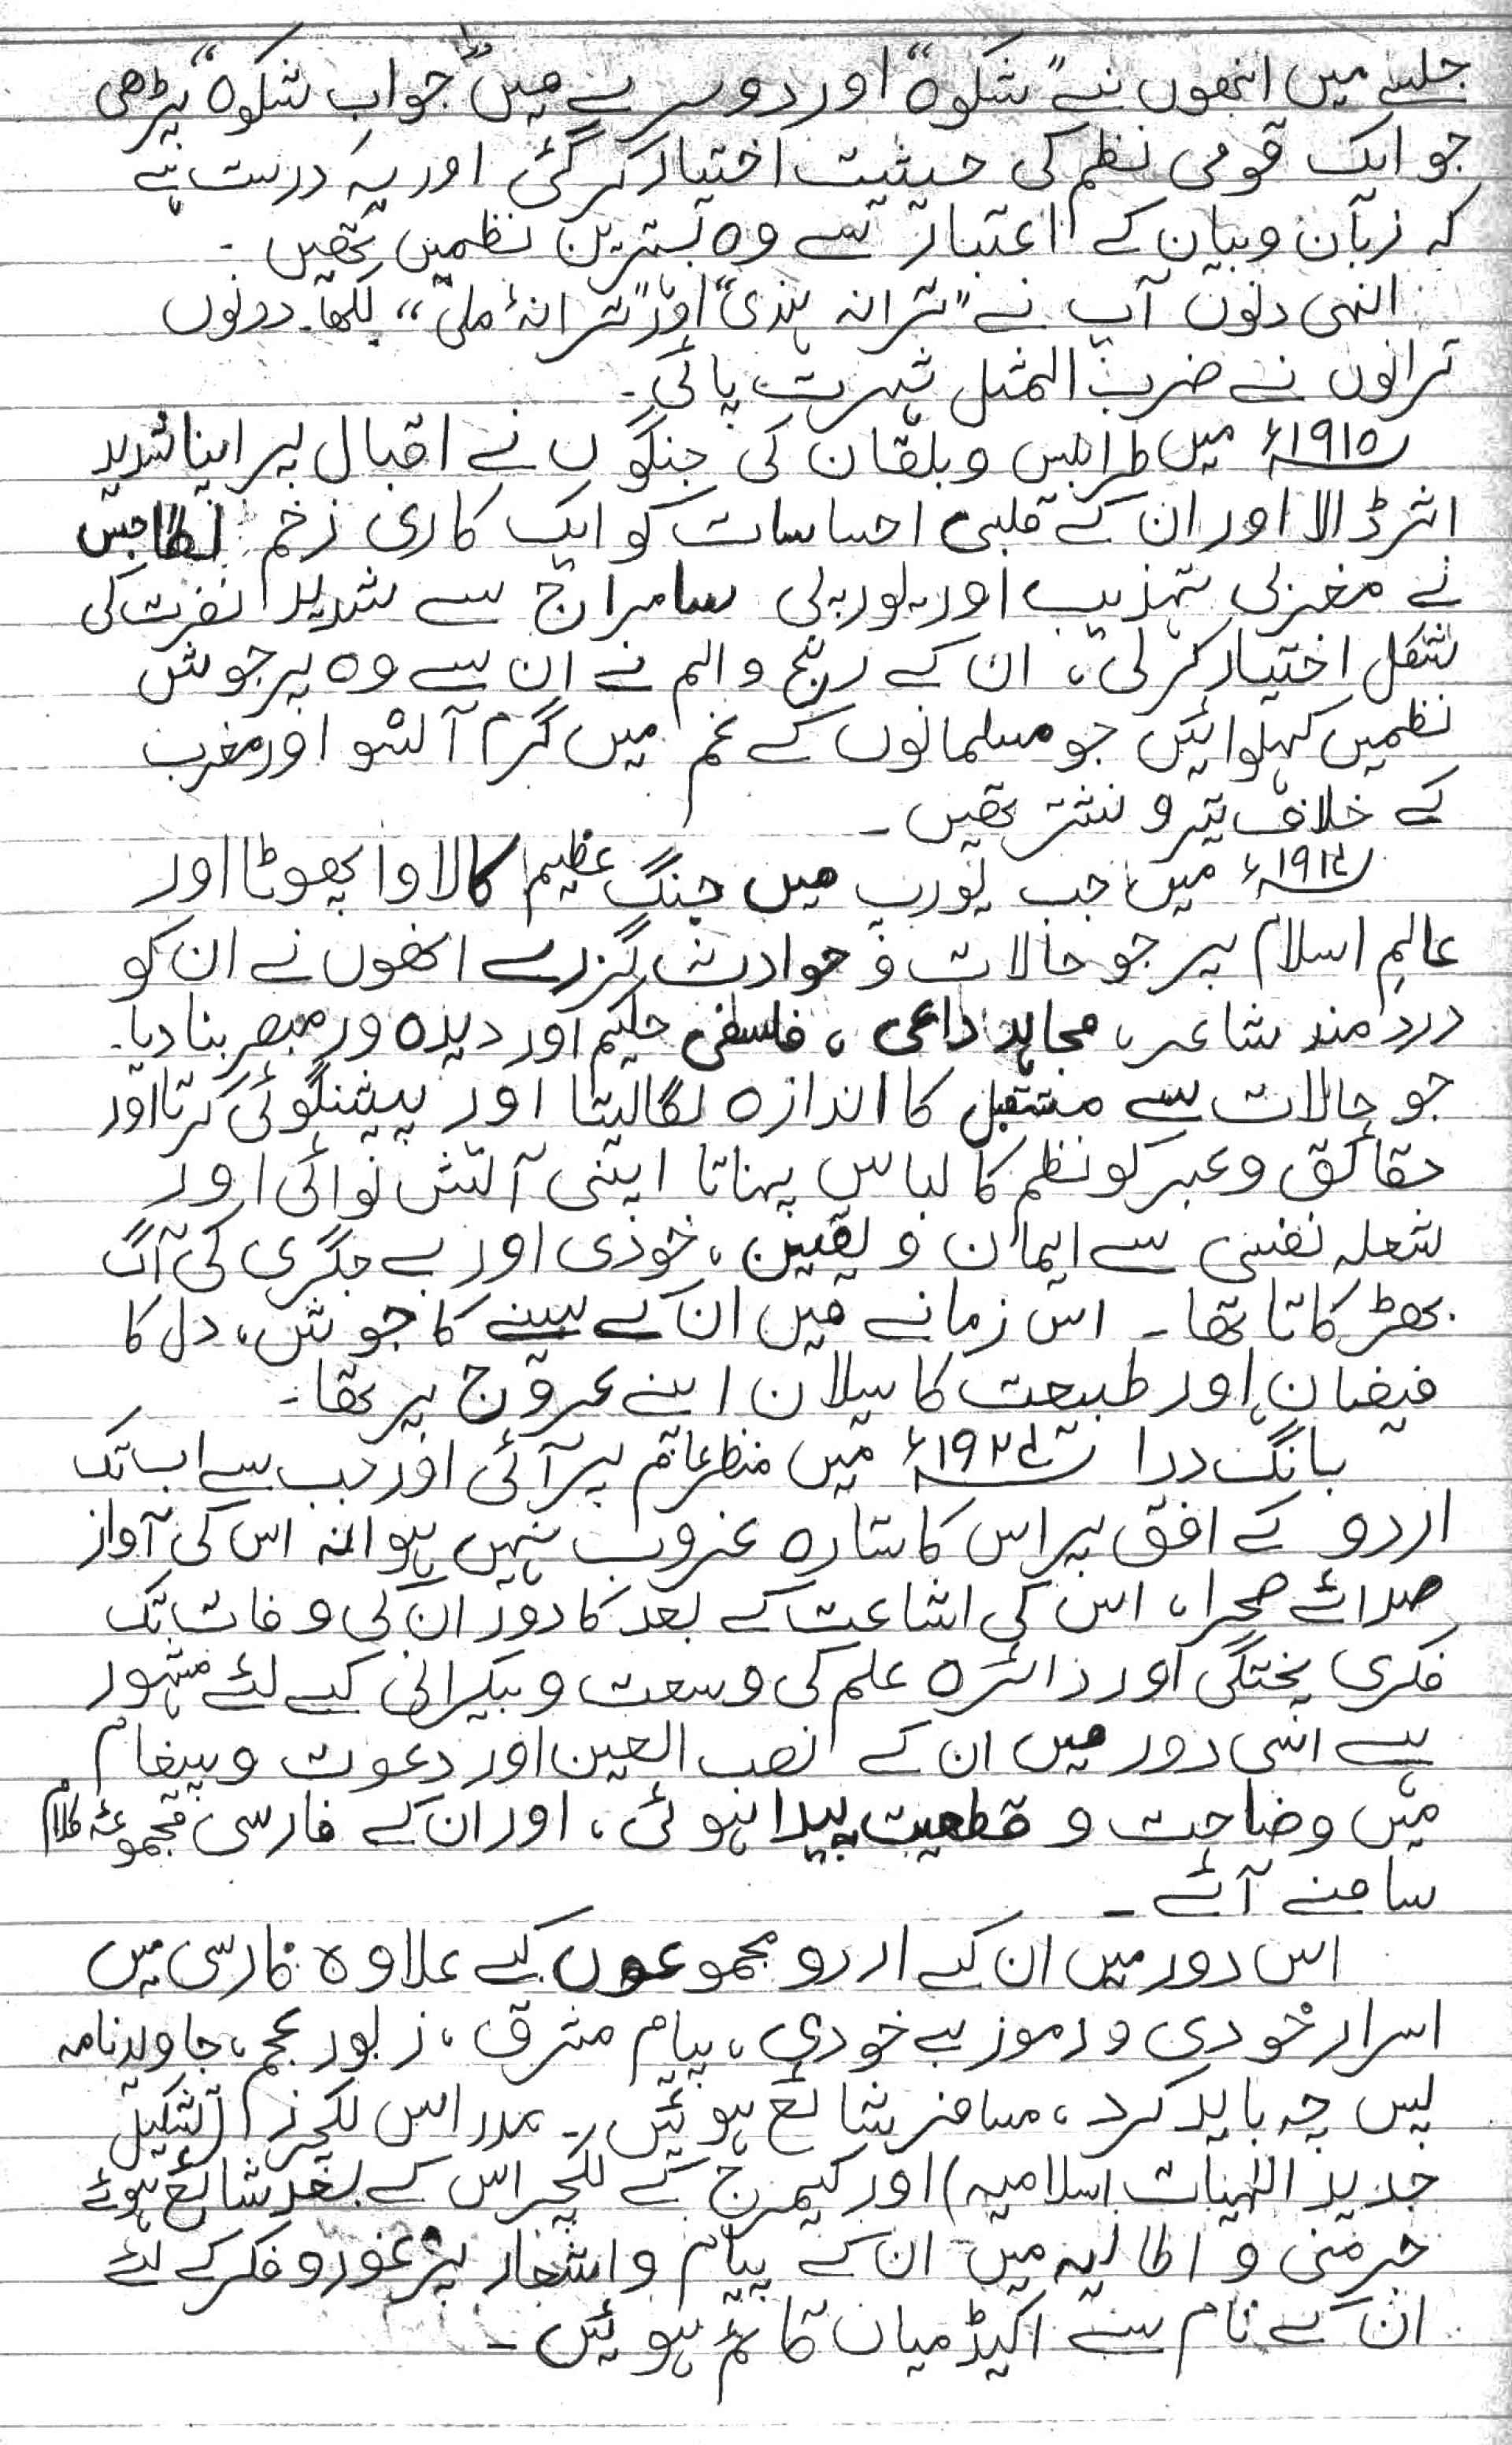 004 Urdu Essay Allama Iqbal Example Dreaded On In For Class 10 With Poetry Ka Shaheen Headings And 1920